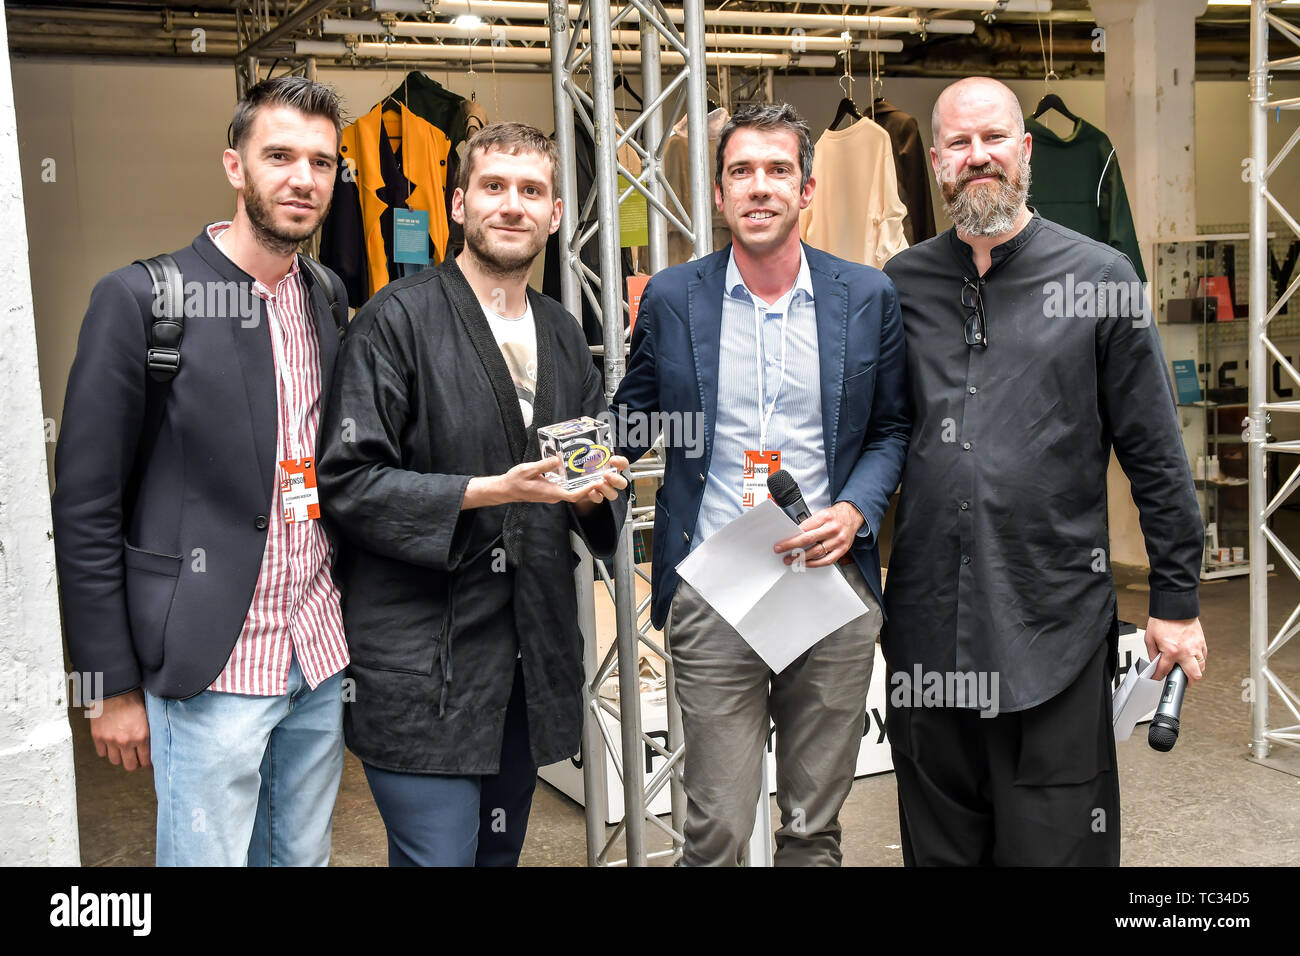 London, UK. 05th June, 2019. Marco Meconi is a winner of Accessories Costume & Mode (Roma) at the Graduate Fashion Week 2019 - Final Day, on 5 June 2019, Old Truman Brewery, London, UK. Credit: Picture Capital/Alamy Live News - Stock Image